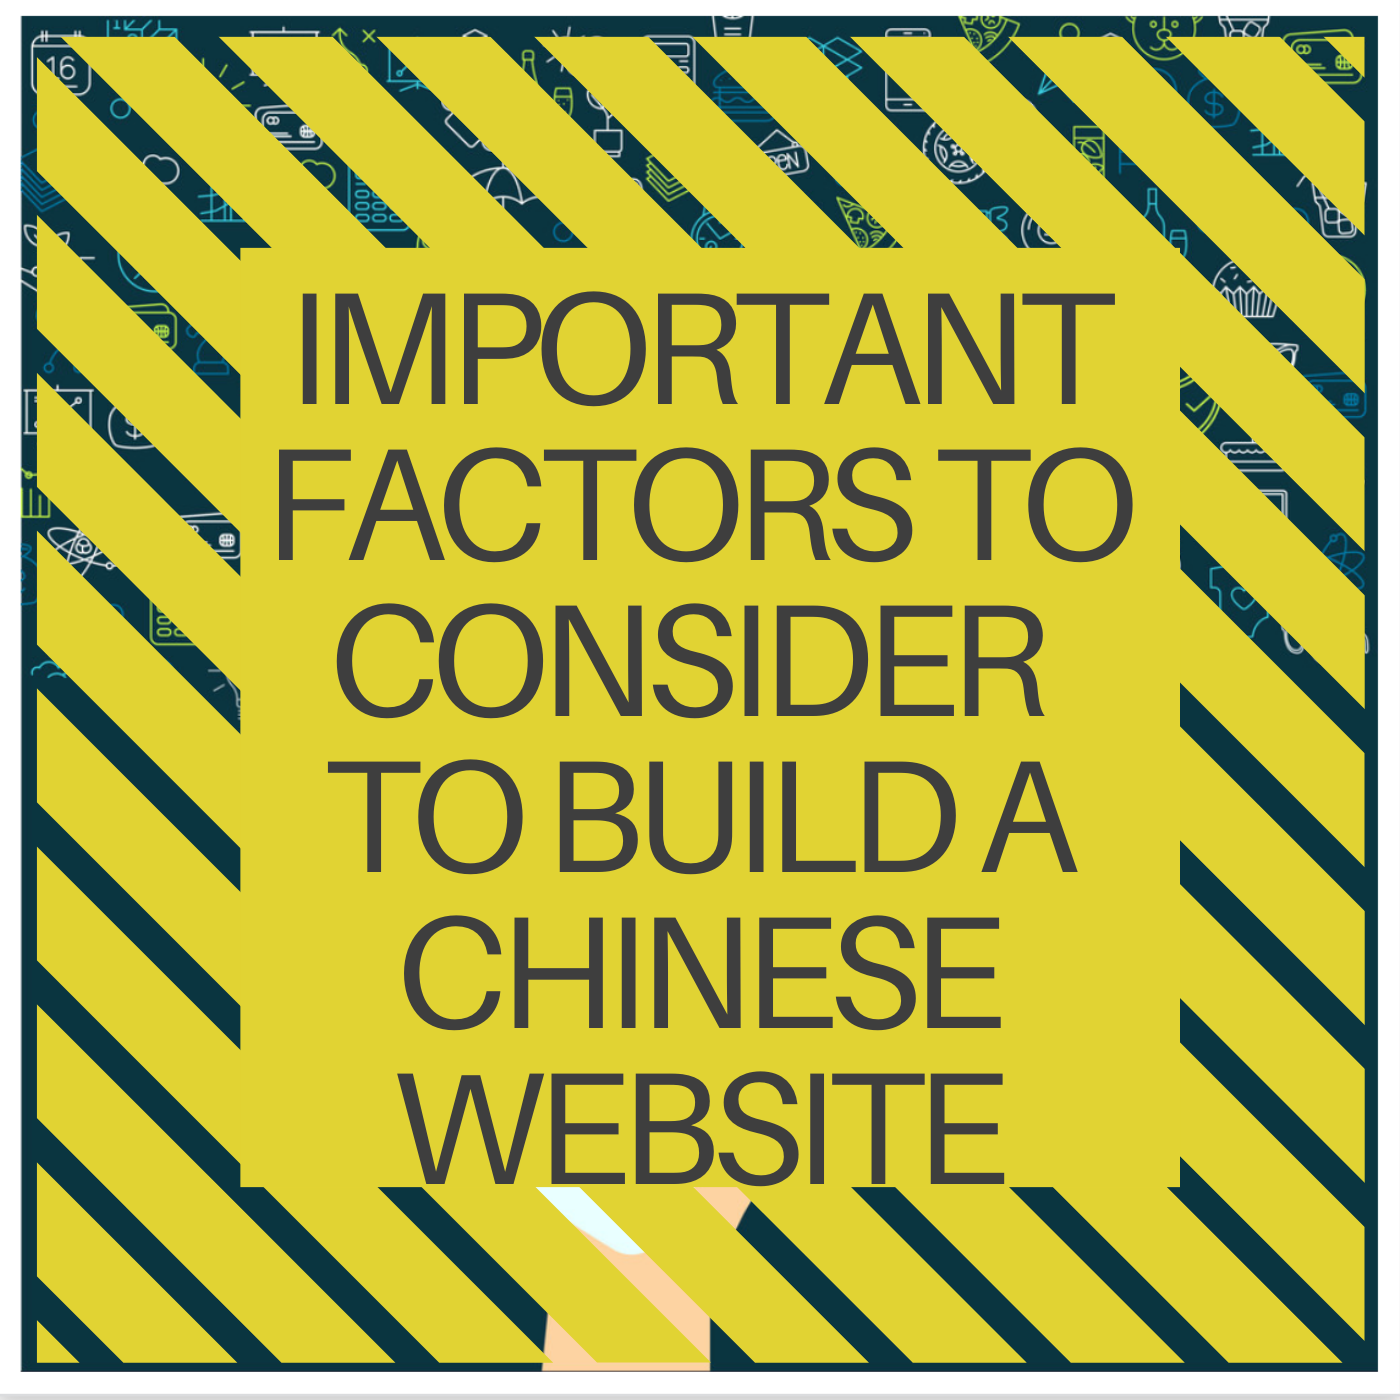 build a chinese website